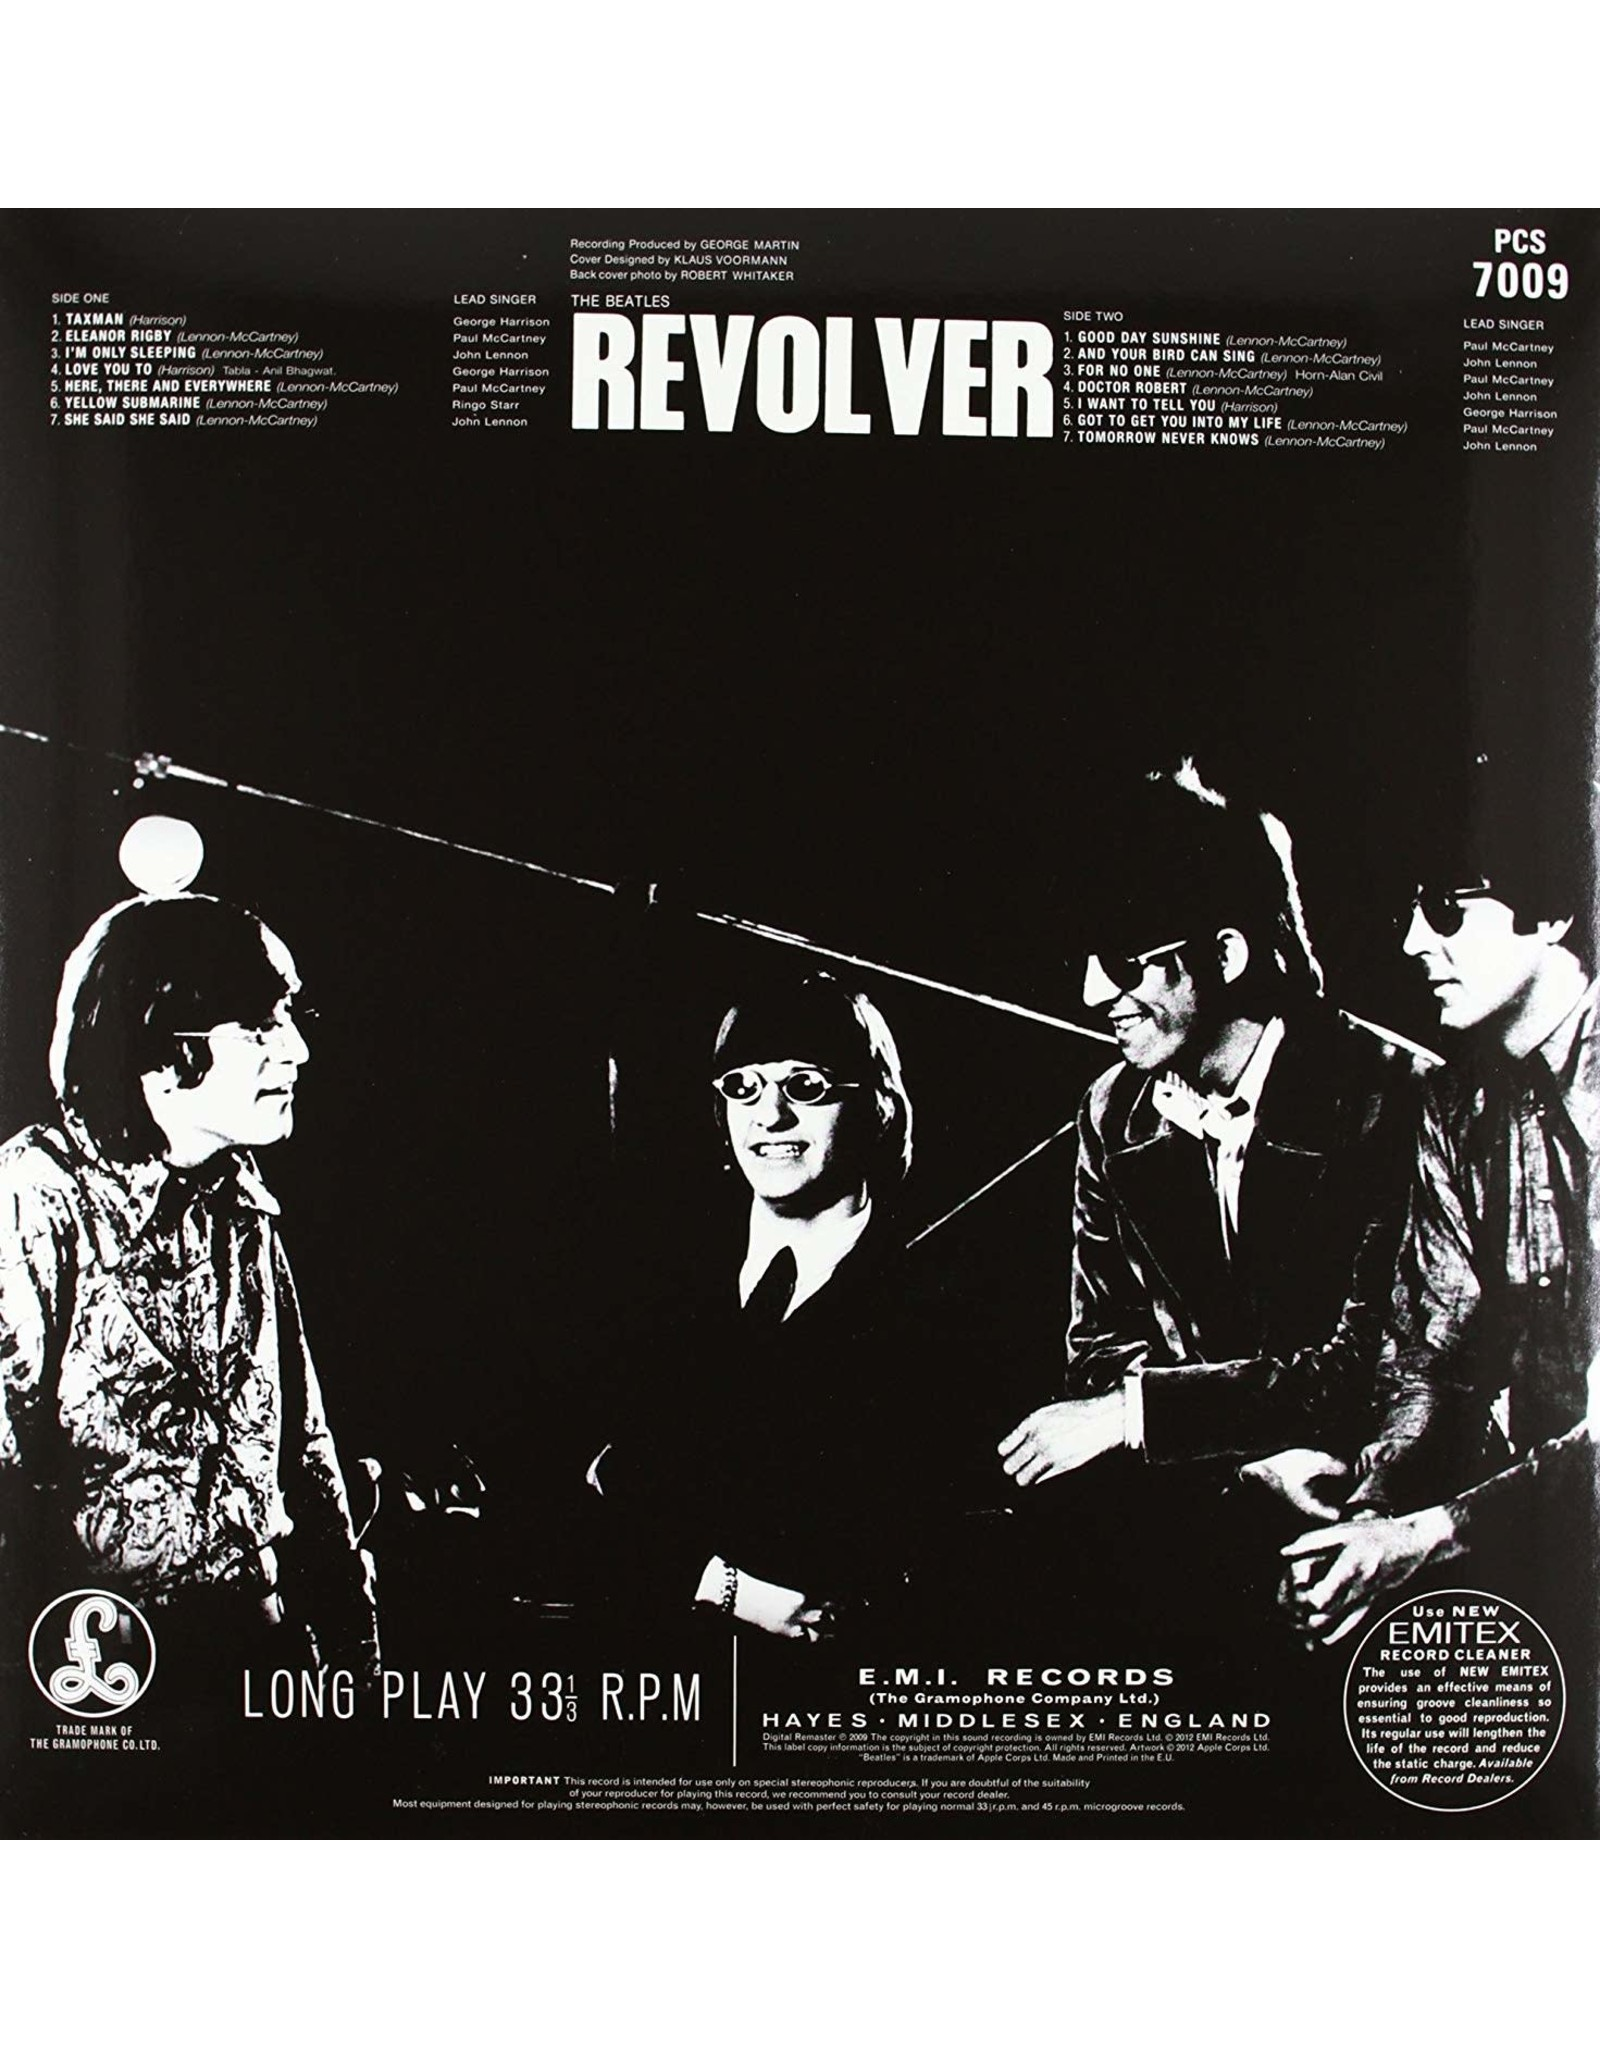 Beatles - Revolver (2009 Stereo Mix)